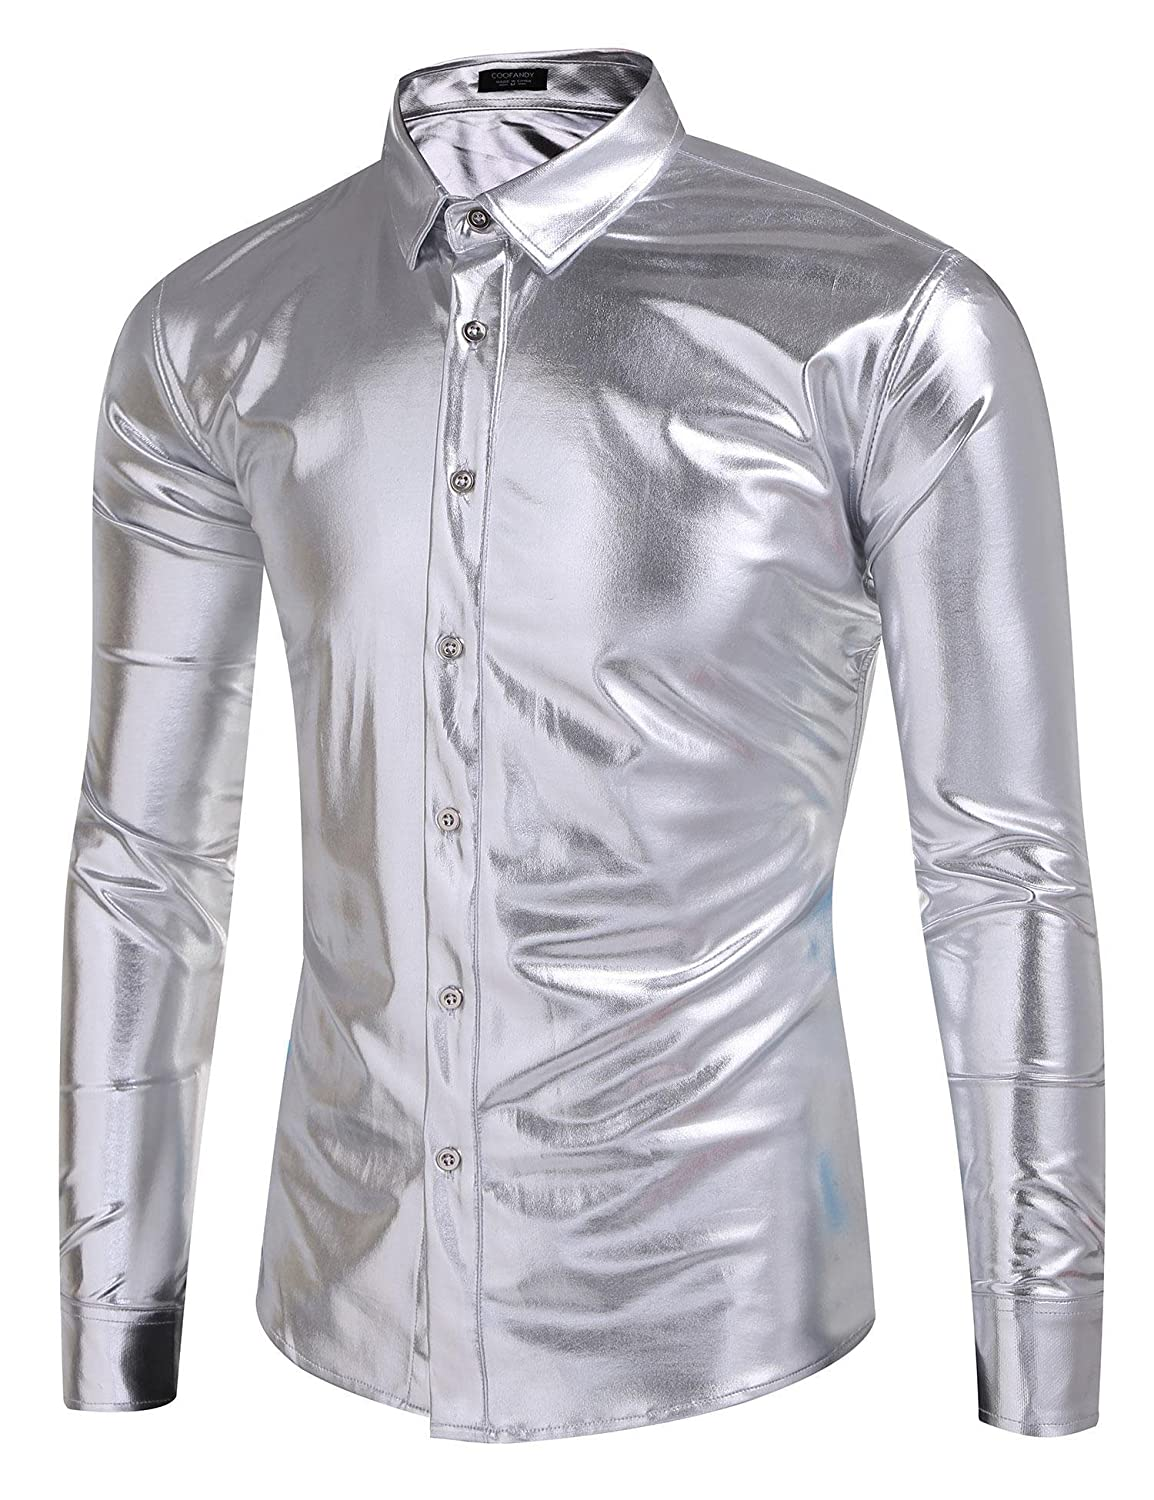 COOFANDY Men's Metallic Shiny Nightclub Slim Fit Long Sleeve Button Down Dress Shirts